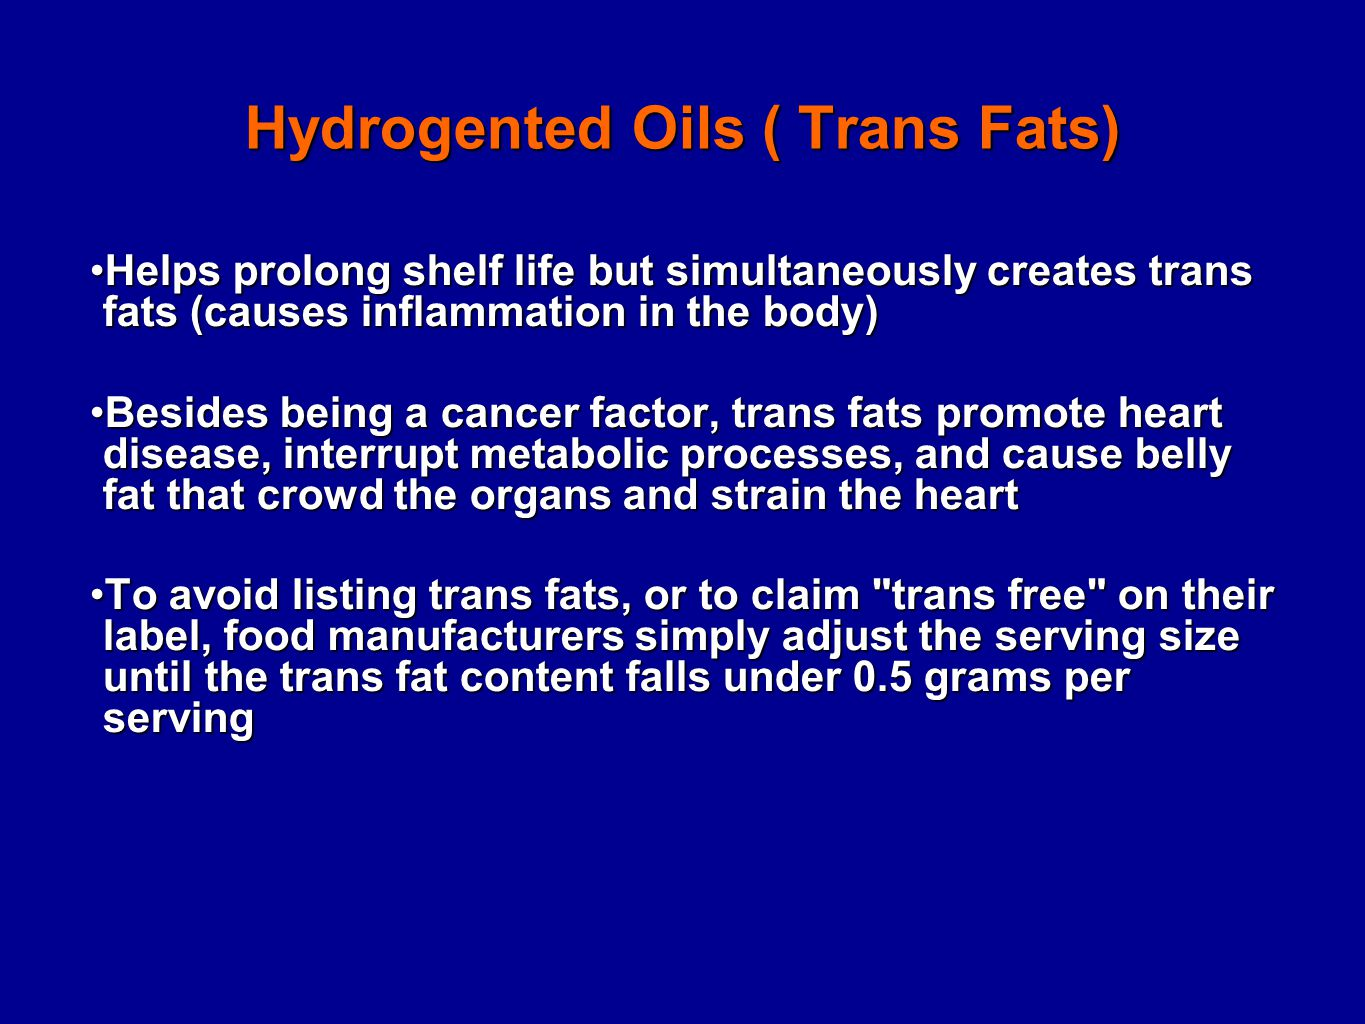 Hydrogented Oils ( Trans Fats) Helps prolong shelf life but simultaneously creates trans fats (causes inflammation in the body)Helps prolong shelf life but simultaneously creates trans fats (causes inflammation in the body) Besides being a cancer factor, trans fats promote heart disease, interrupt metabolic processes, and cause belly fat that crowd the organs and strain the heartBesides being a cancer factor, trans fats promote heart disease, interrupt metabolic processes, and cause belly fat that crowd the organs and strain the heart To avoid listing trans fats, or to claim trans free on their label, food manufacturers simply adjust the serving size until the trans fat content falls under 0.5 grams per servingTo avoid listing trans fats, or to claim trans free on their label, food manufacturers simply adjust the serving size until the trans fat content falls under 0.5 grams per serving